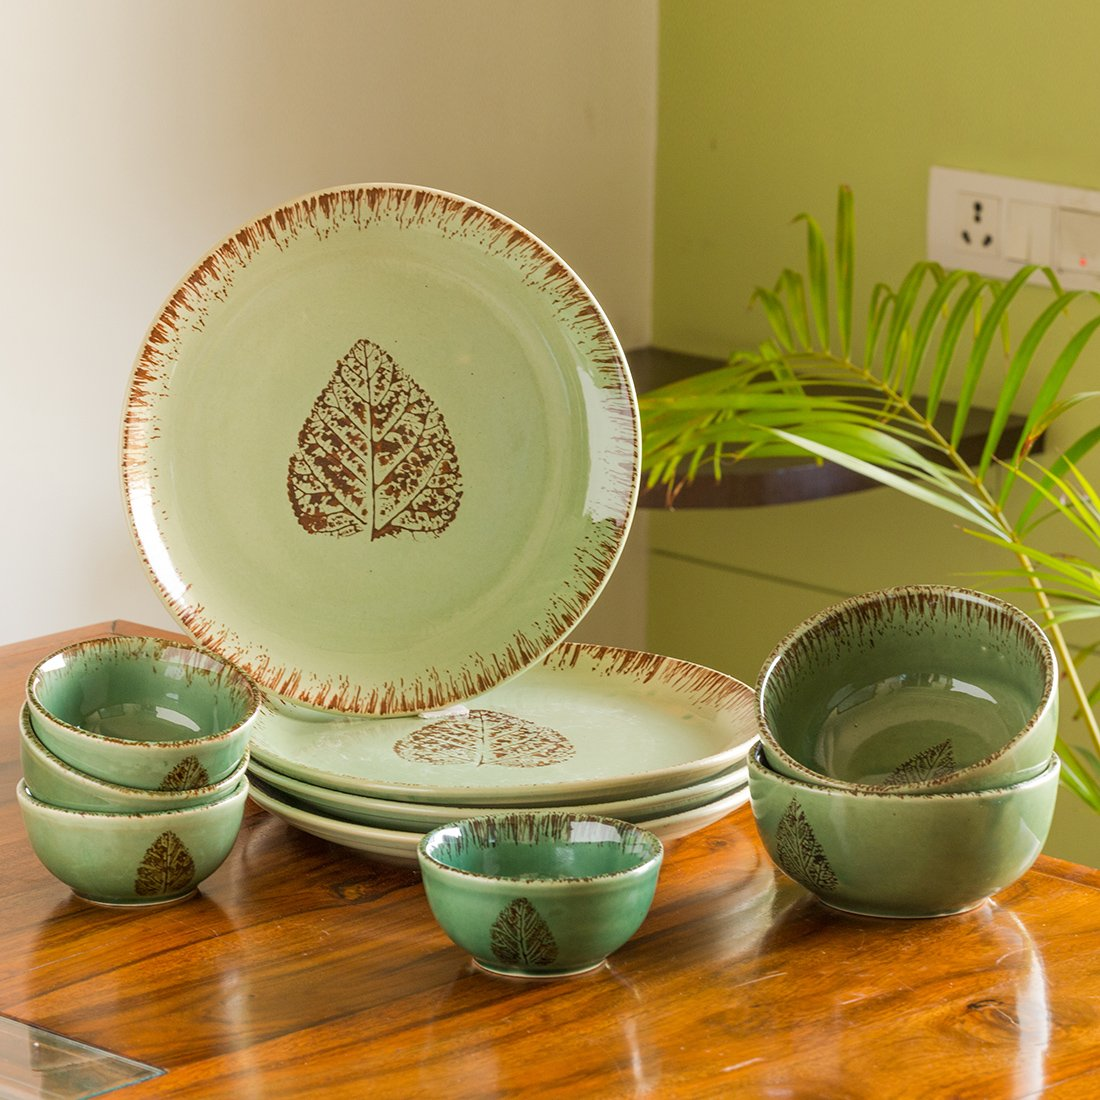 Moorni Banyan Leave Hand-painted Studio Pottery Dinner Plates with Serving Bowls & Katoris In Ceramic (10 Pieces, Serving for 4, Microwave Safe)